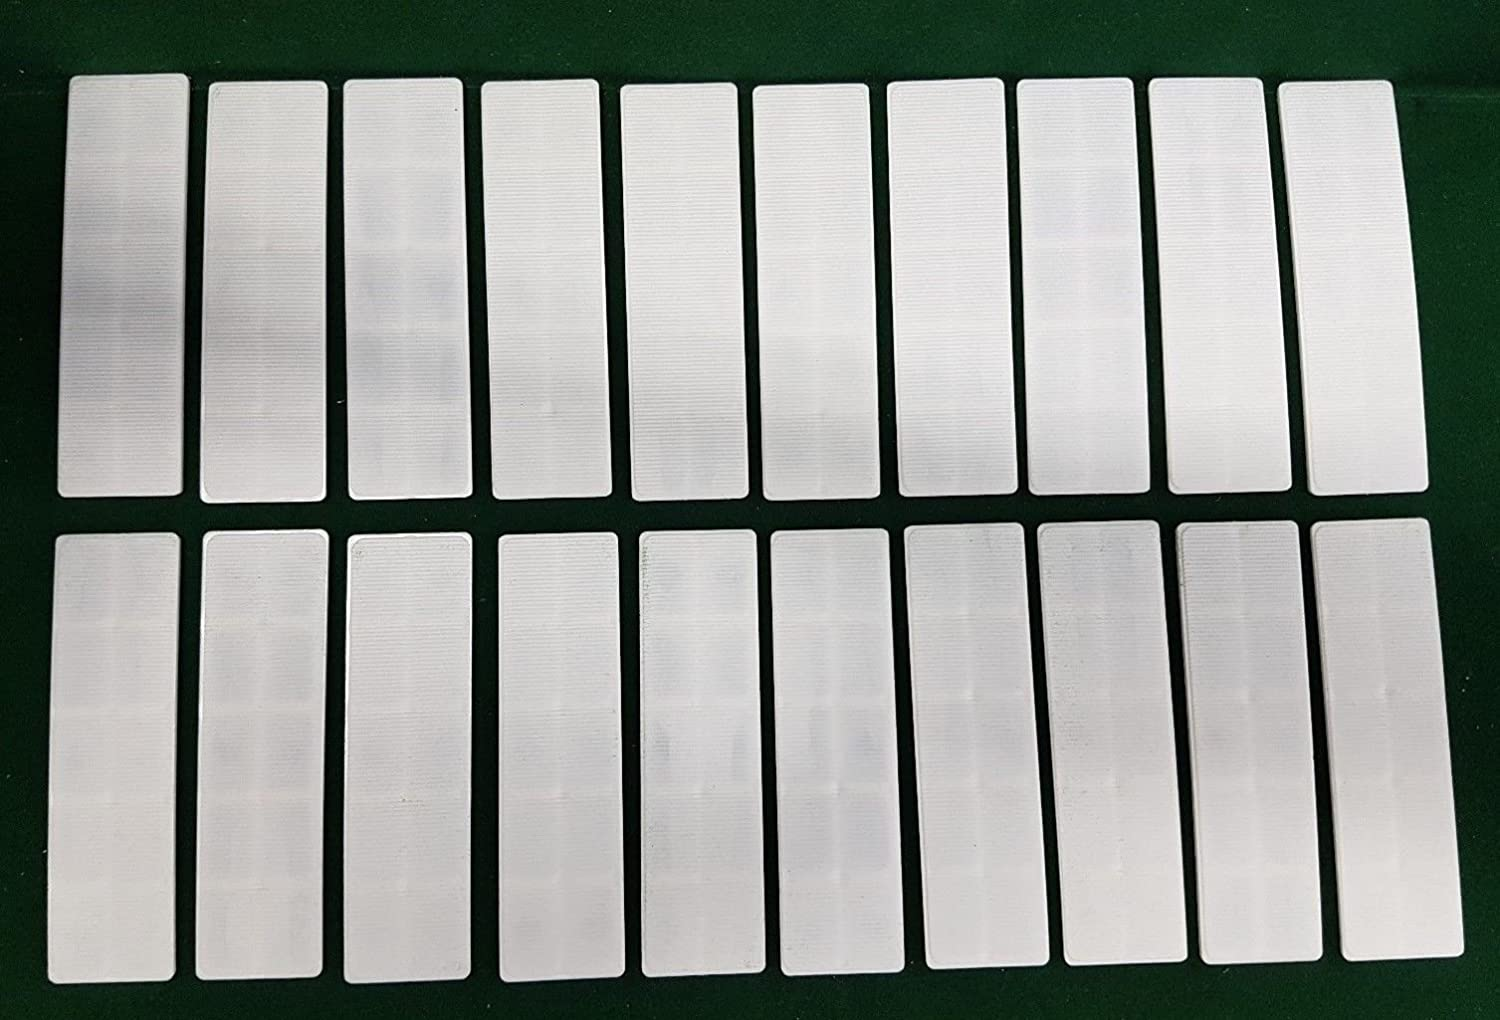 100 x WHITE 3mm x 100mm x 28mm PLASTIC WINDOW GLASS GLAZING PACKERS SPACERS GCH